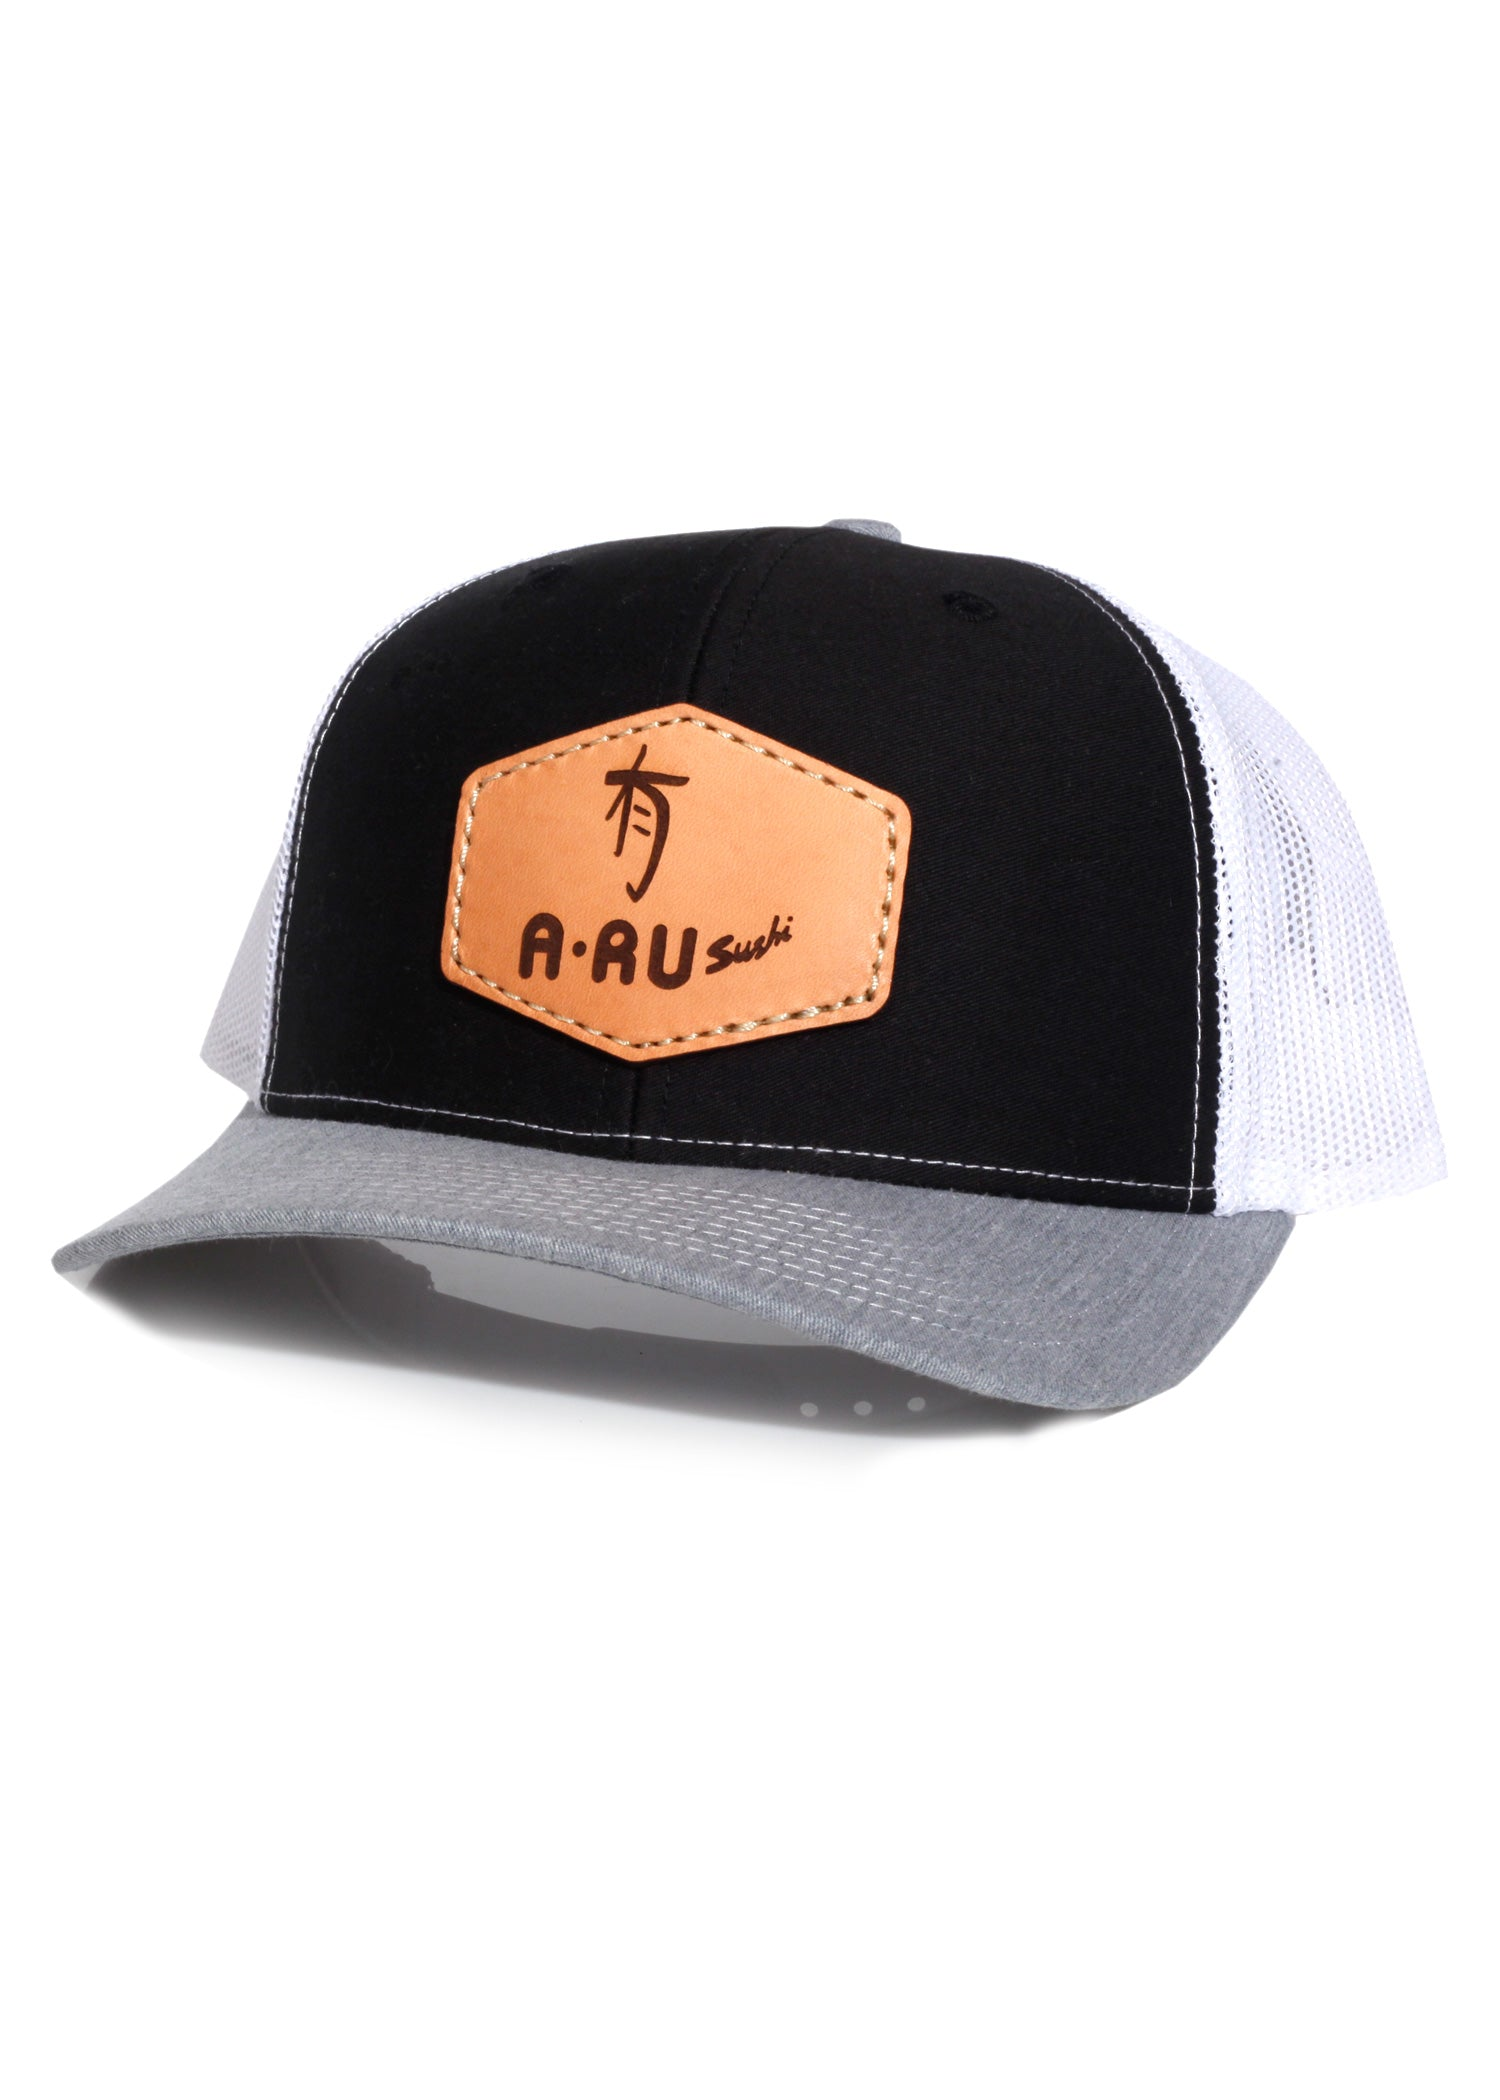 A-Ru Sushi - Richardson 112 Black/White/Heather Grey